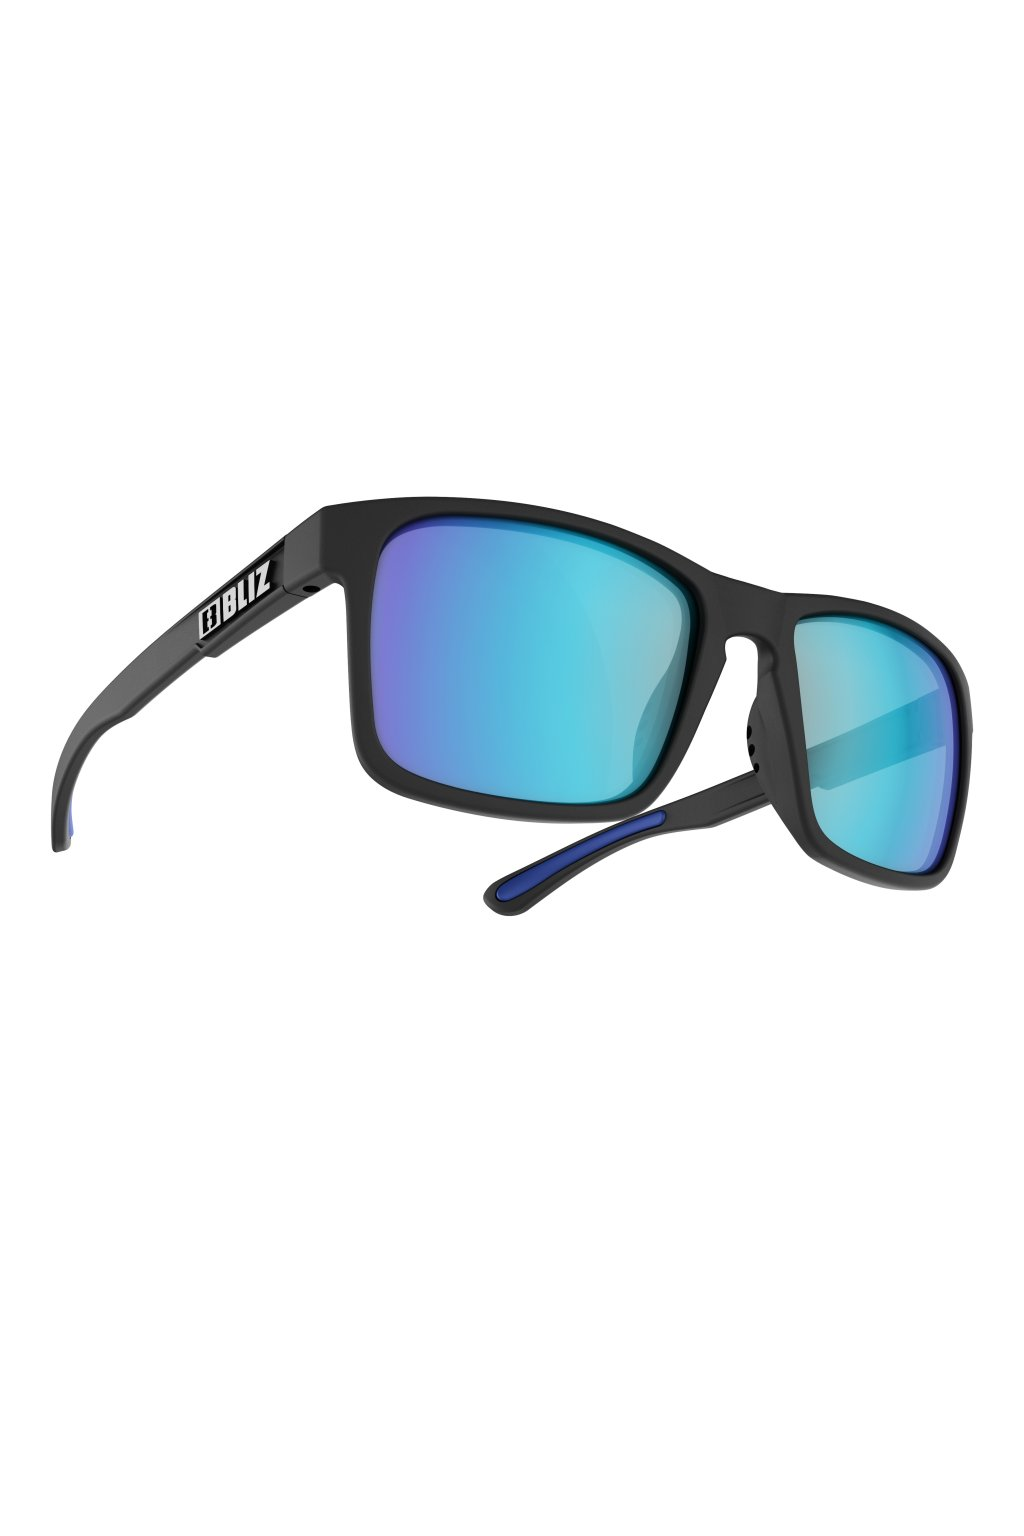 54605 13 Luna Bliz sports glasses black sunglasses